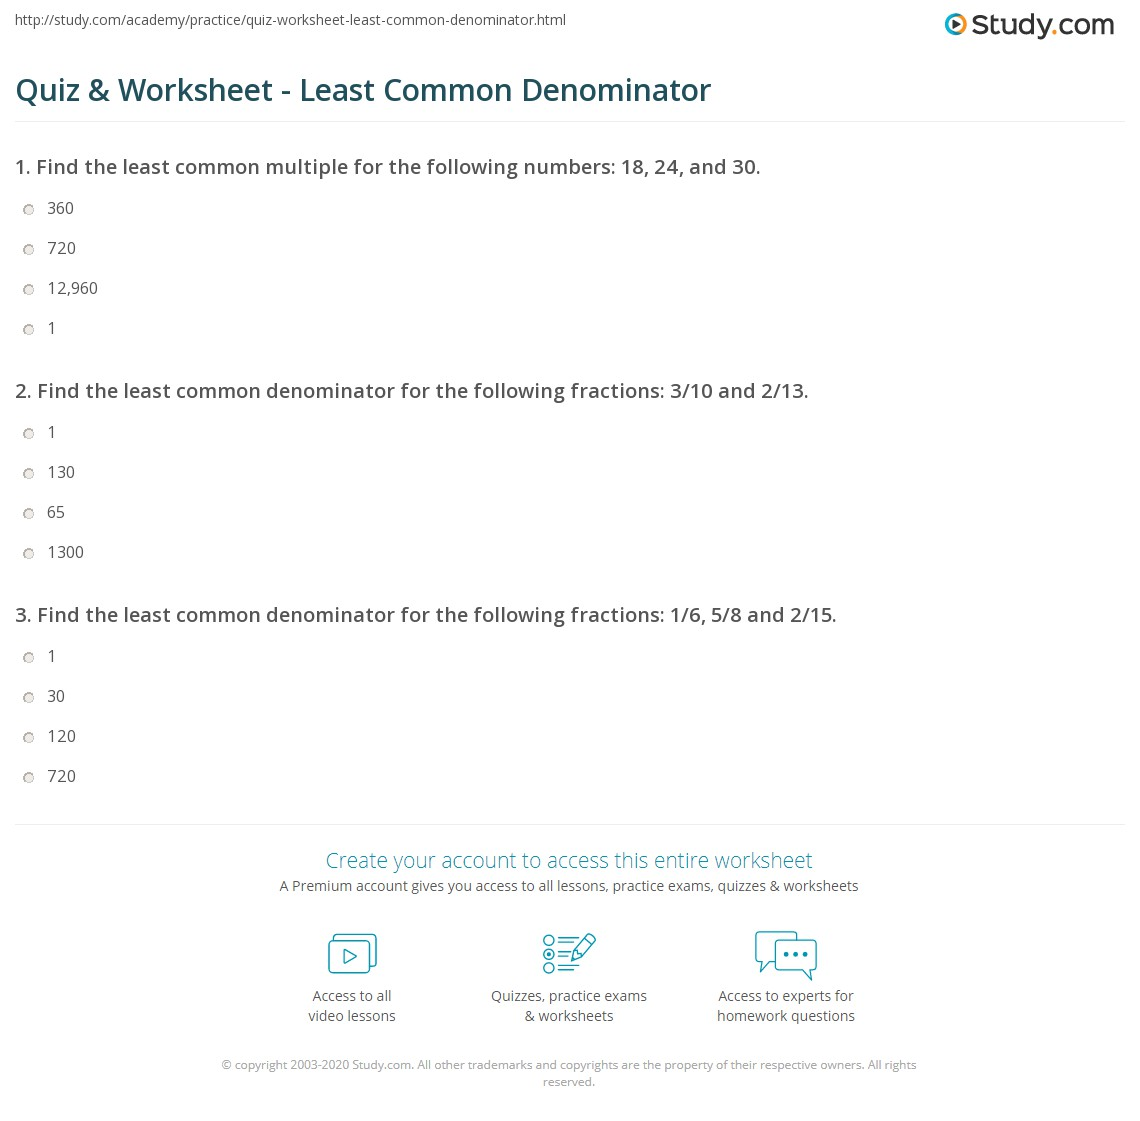 math worksheet : quiz  worksheet  least common denominator  study  : Least Common Denominator Fractions Worksheet